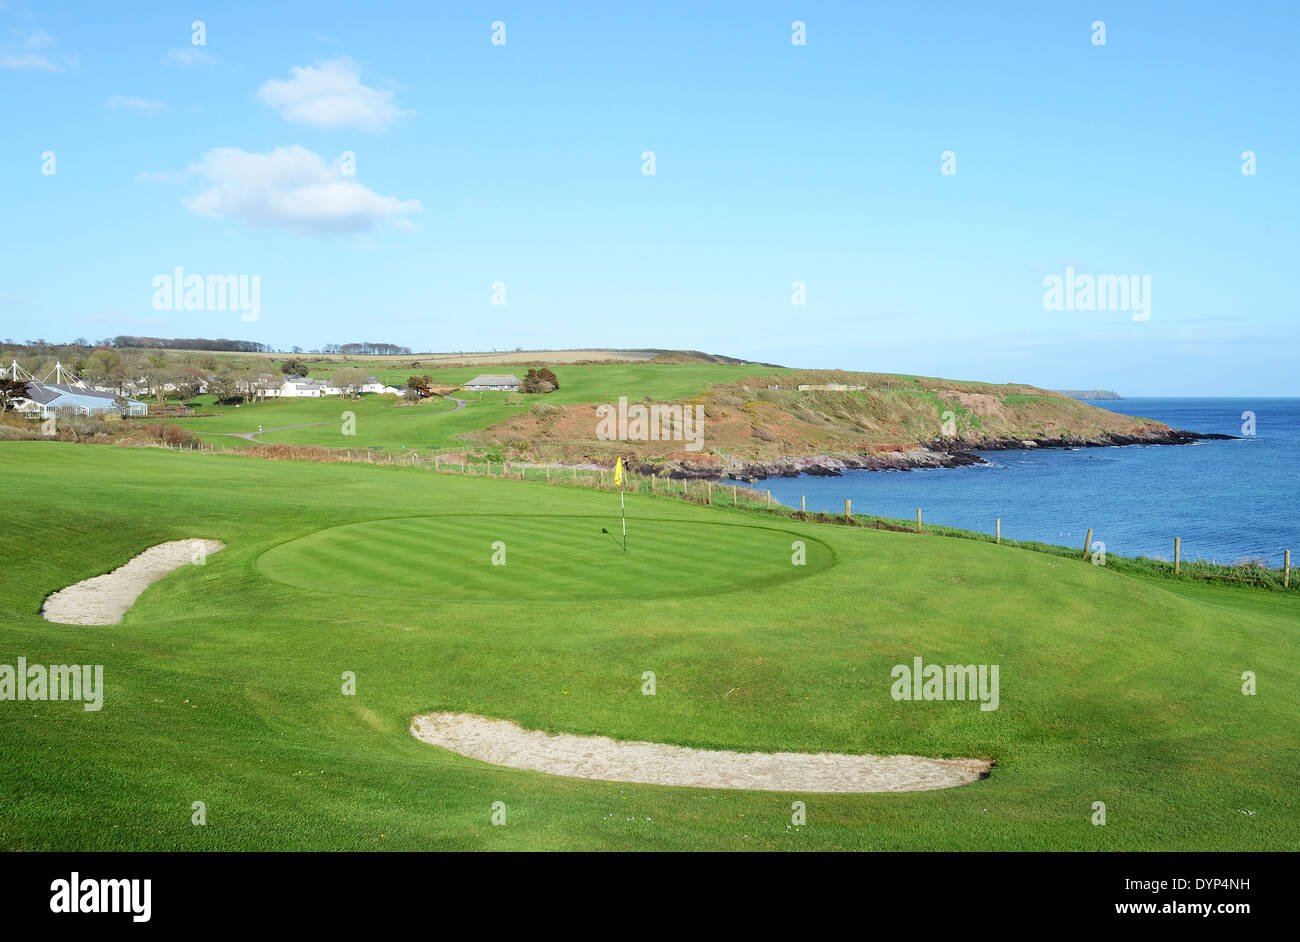 a golf course on the county cork coast in south west ireland - Stock Image